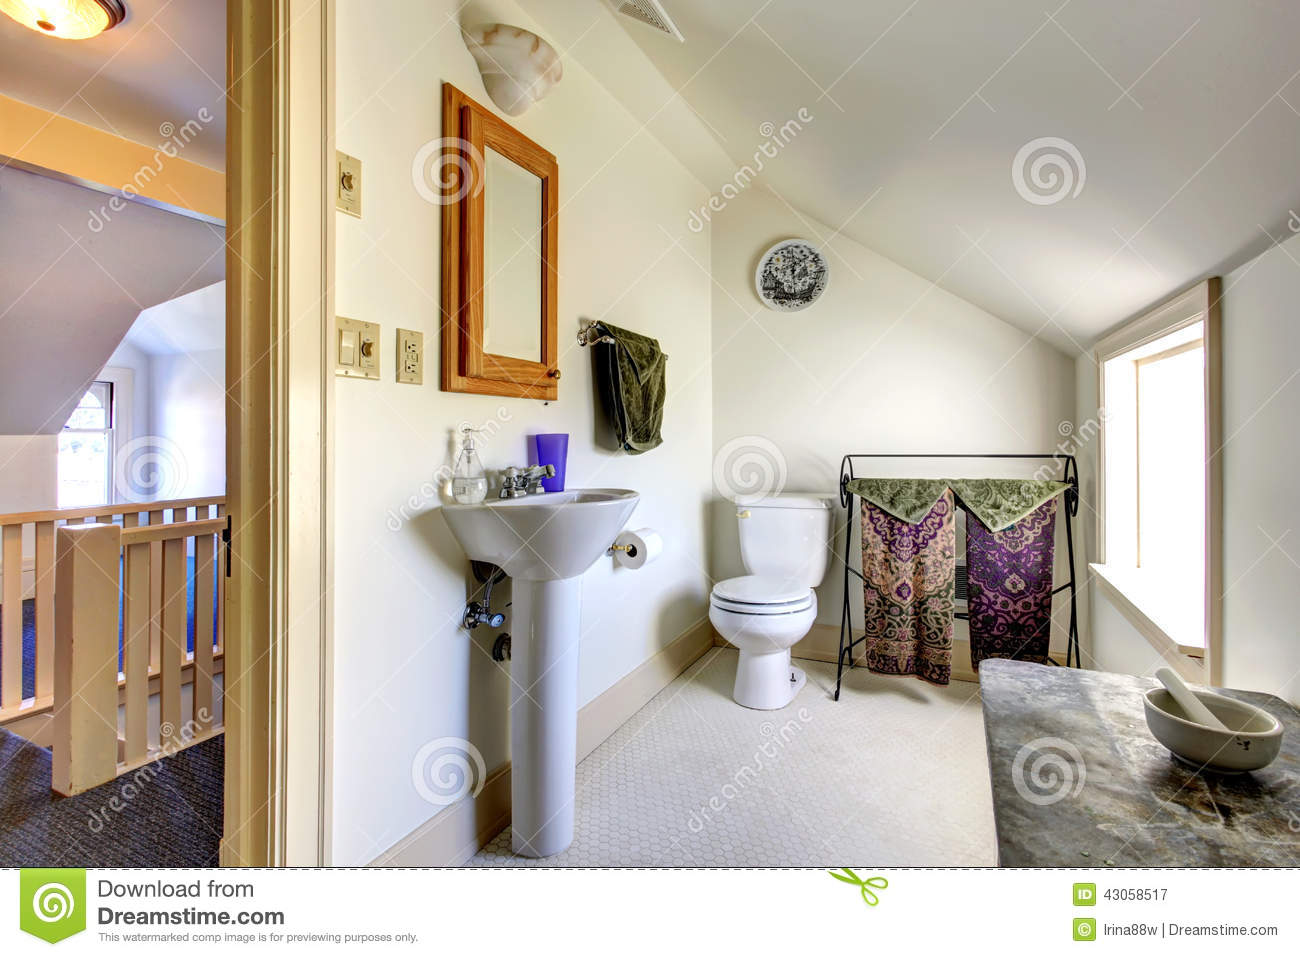 Bathroom Lighting Vaulted Ceiling simple light tone bathroom with vaulted ceiling stock photo